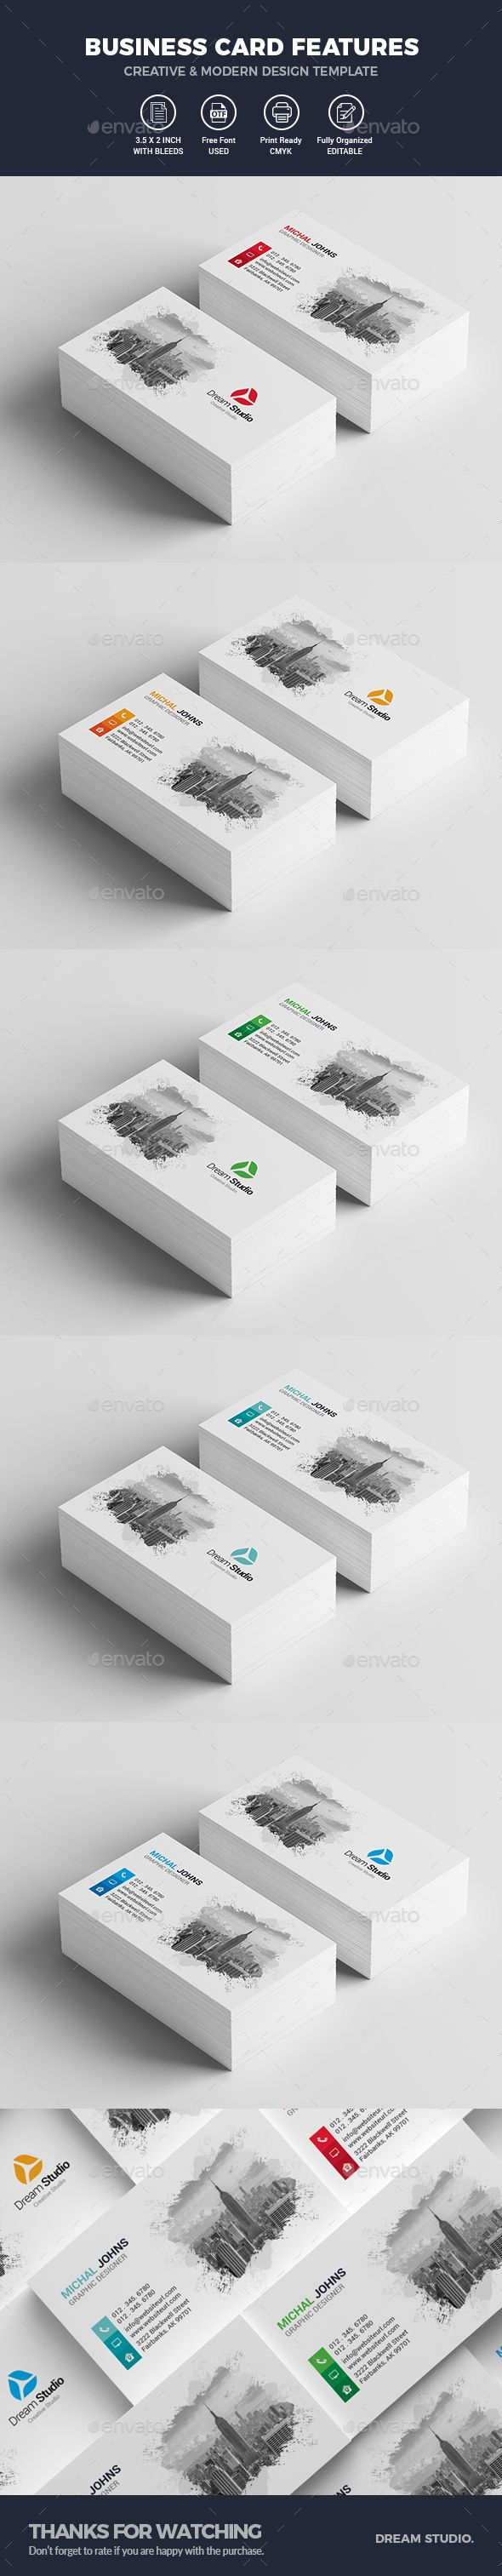 Business Cards — Photoshop PSD #name cards #blue • Download ➝ https://graphicriver.net/item/business-cards/19864491?ref=pxcr